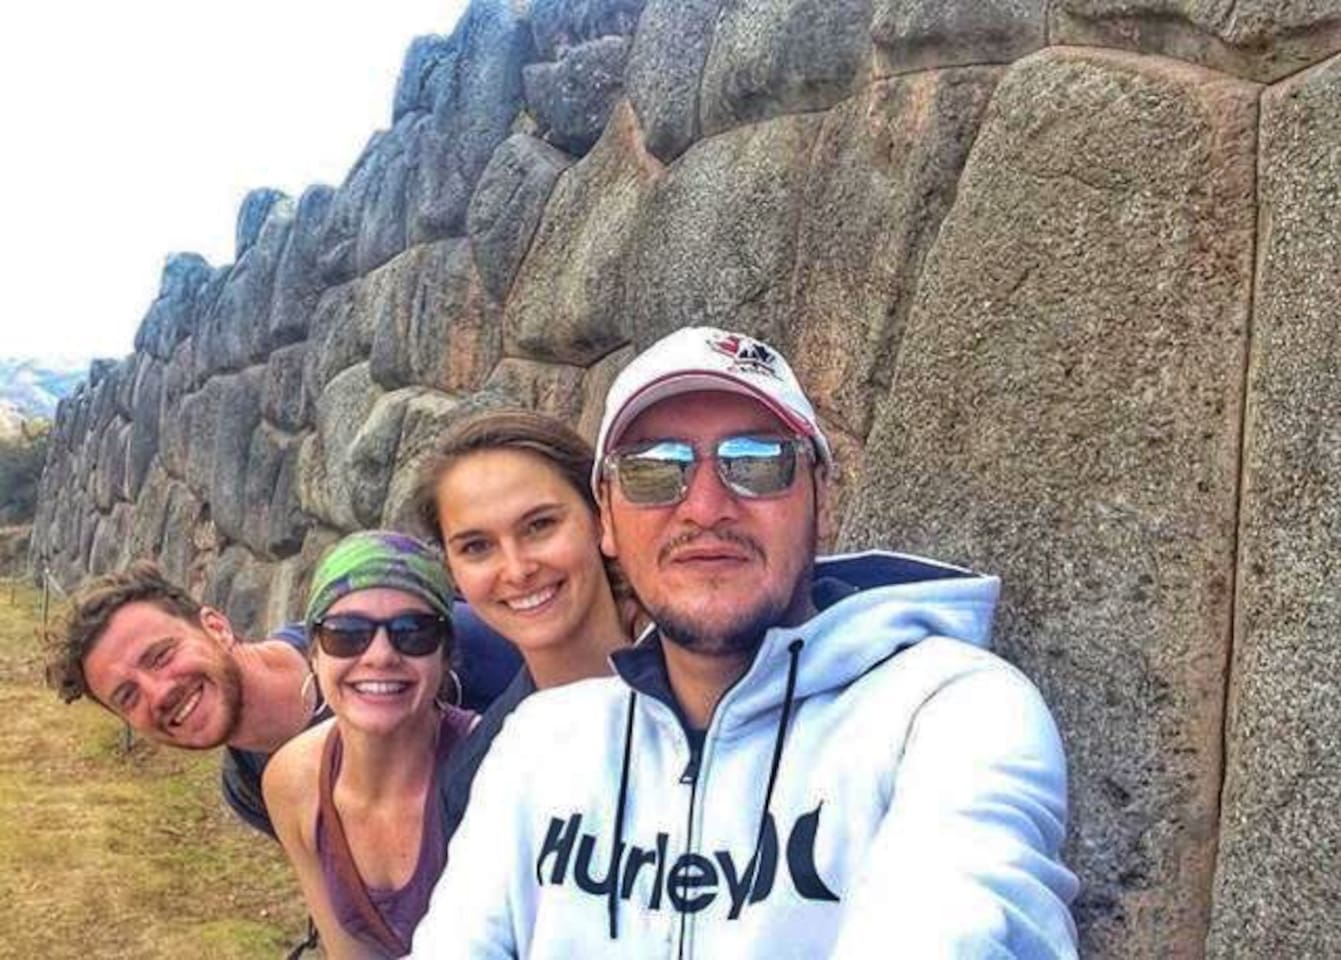 Saqsayhuaman Archaeological Site. What a sight! Come see!